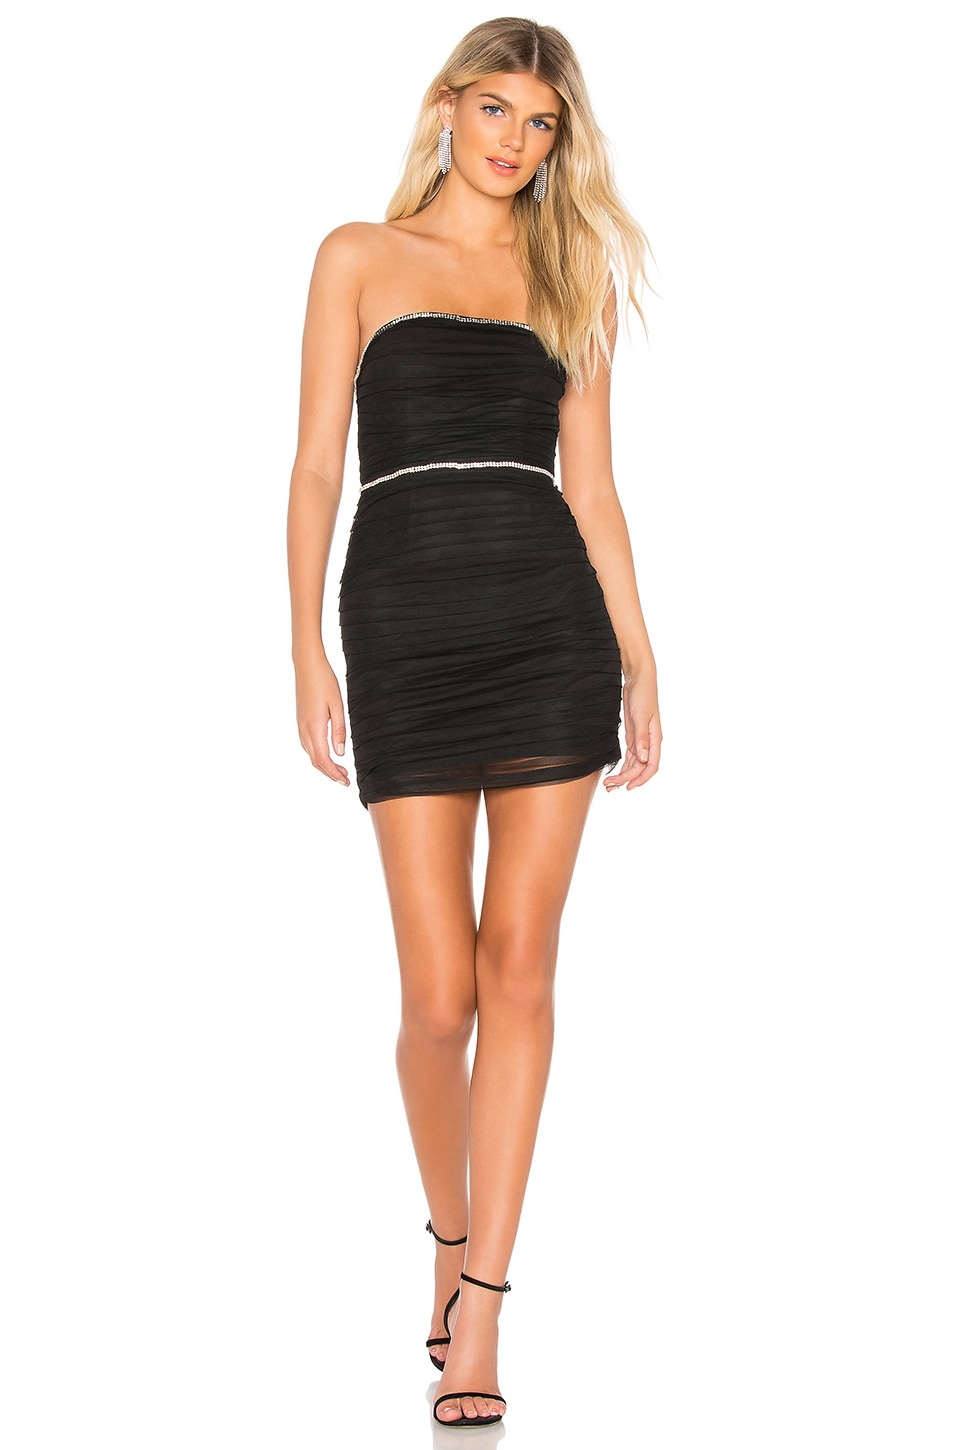 NBD Skyler Mini Dress in Black